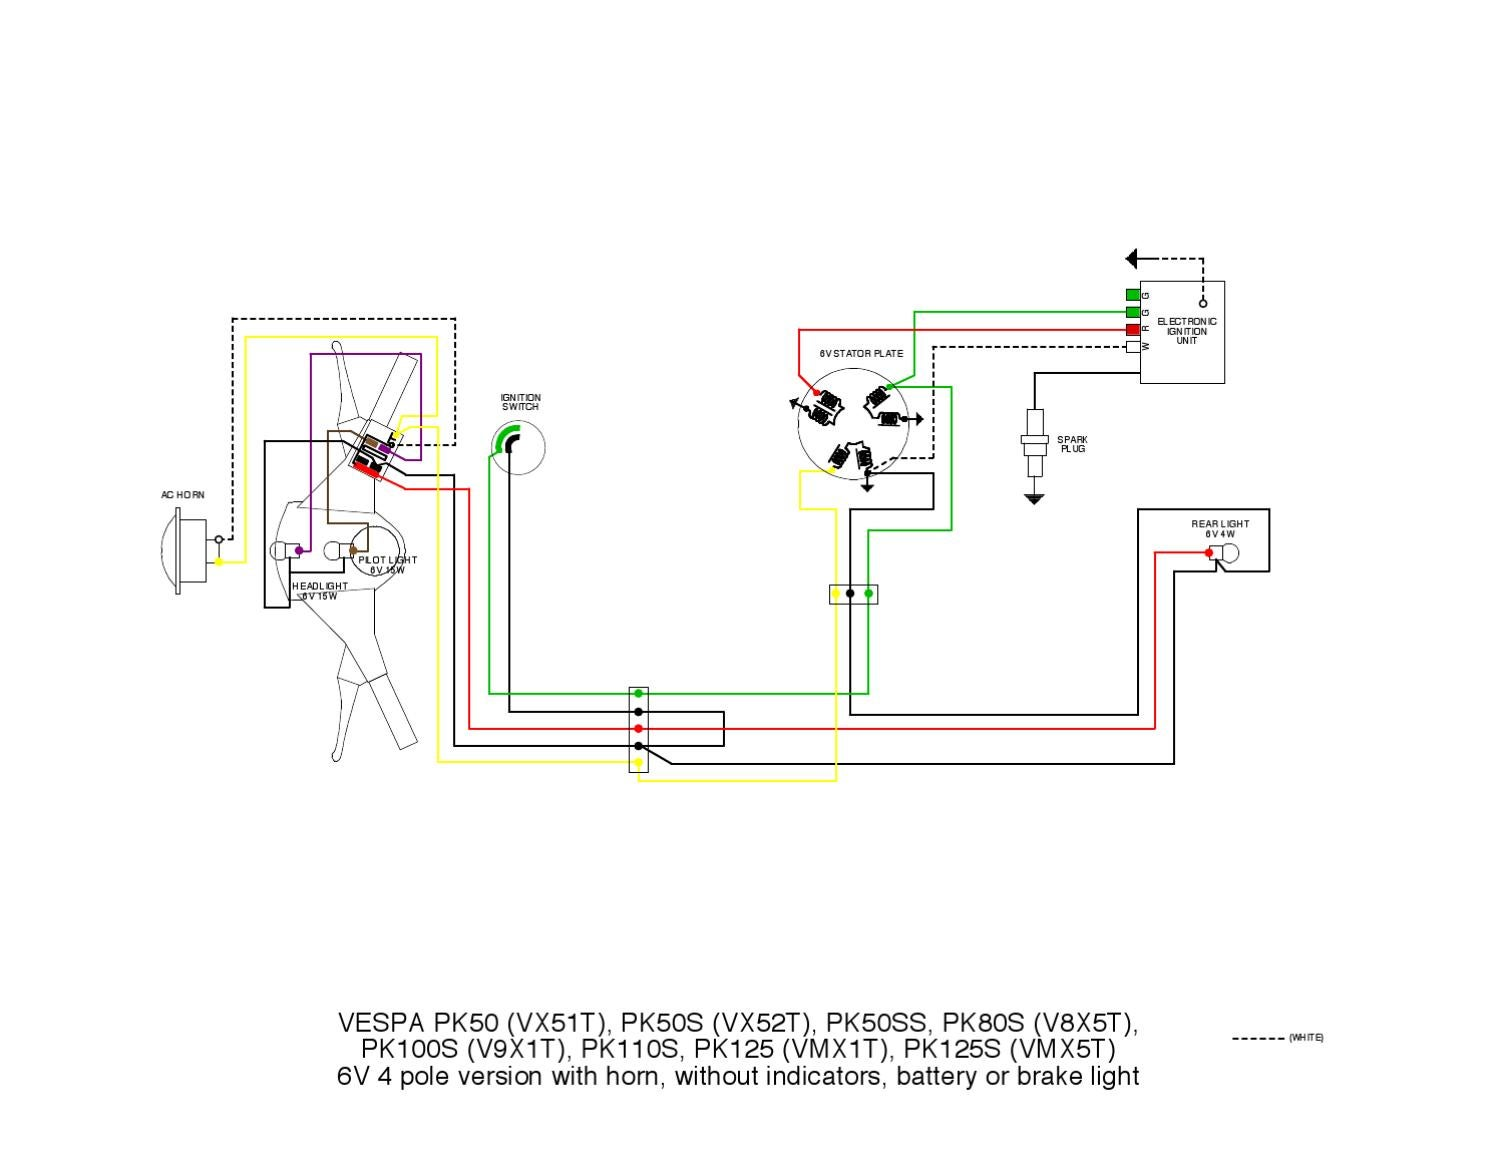 Vespa Gt200 Wiring Diagram Ignition Library Lx150 Schematic Lx 150 Ie Manual Pdf Diagrams Repair